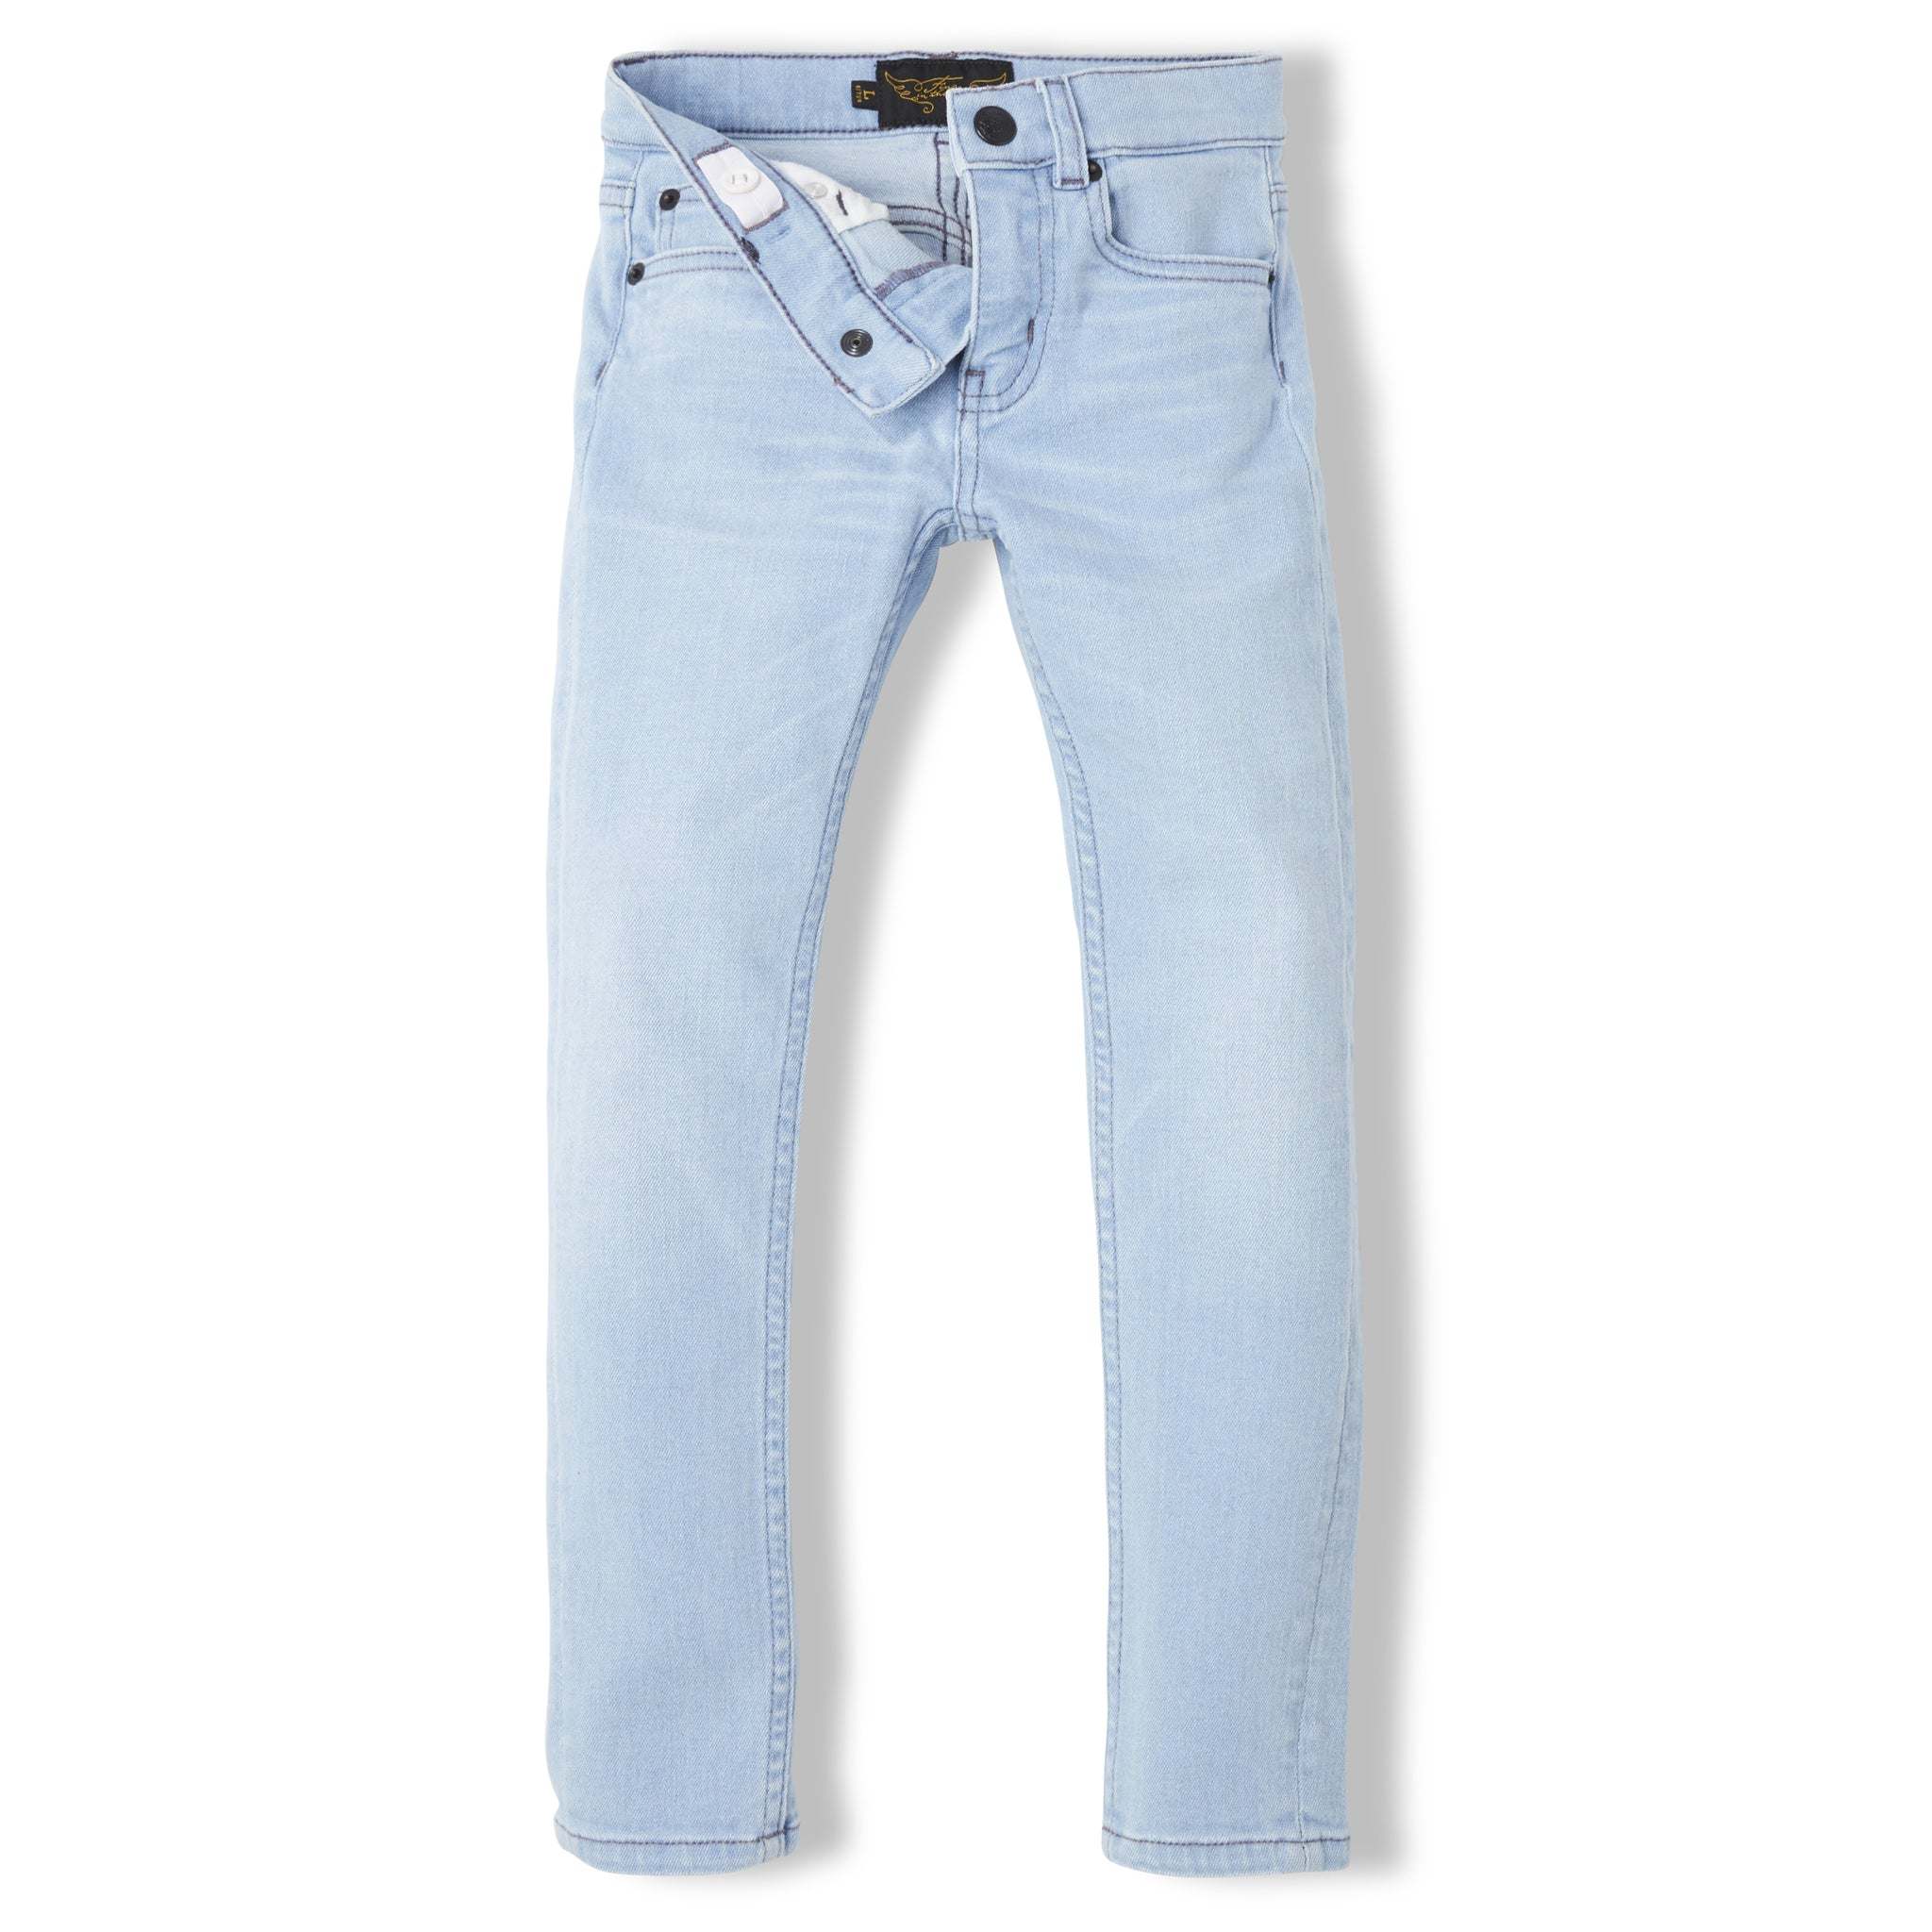 ICON Bleached Blue - Unisex Woven 5 Pocket Slim Fit Jeans 3